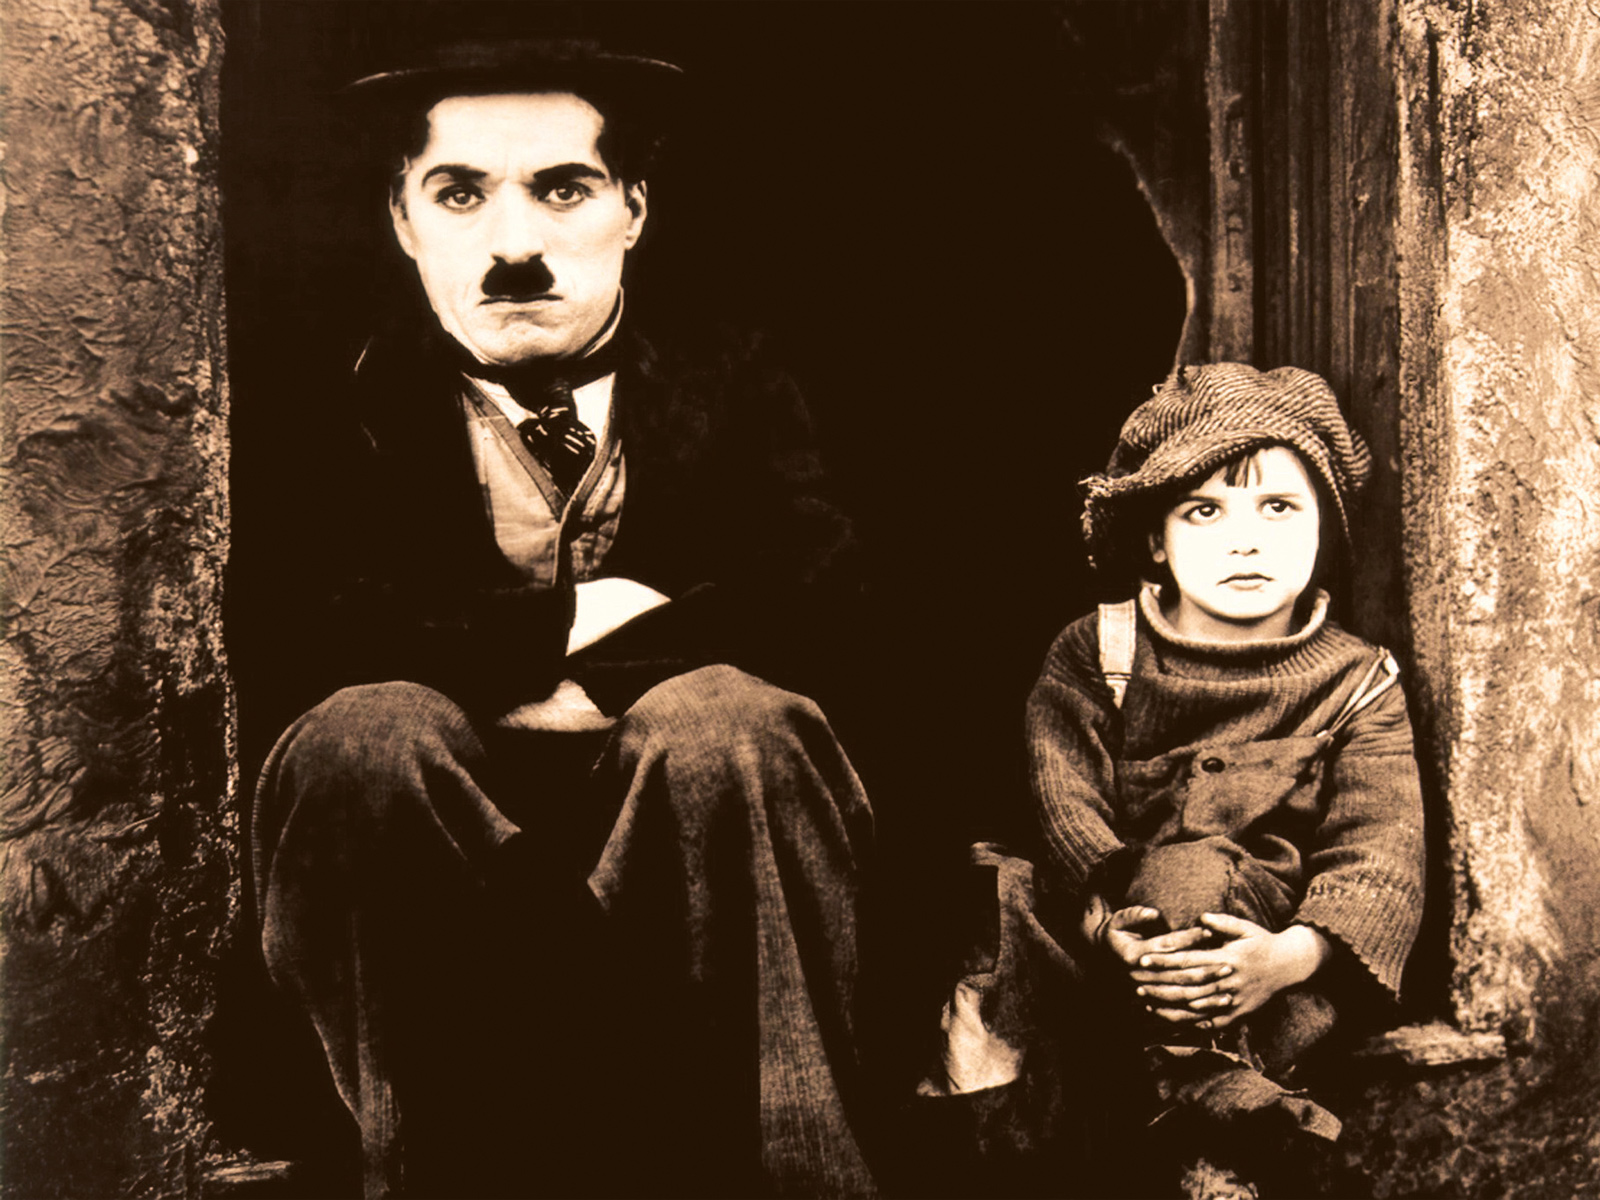 Charles Chaplin Hd Wallpapers Of High Quality Download